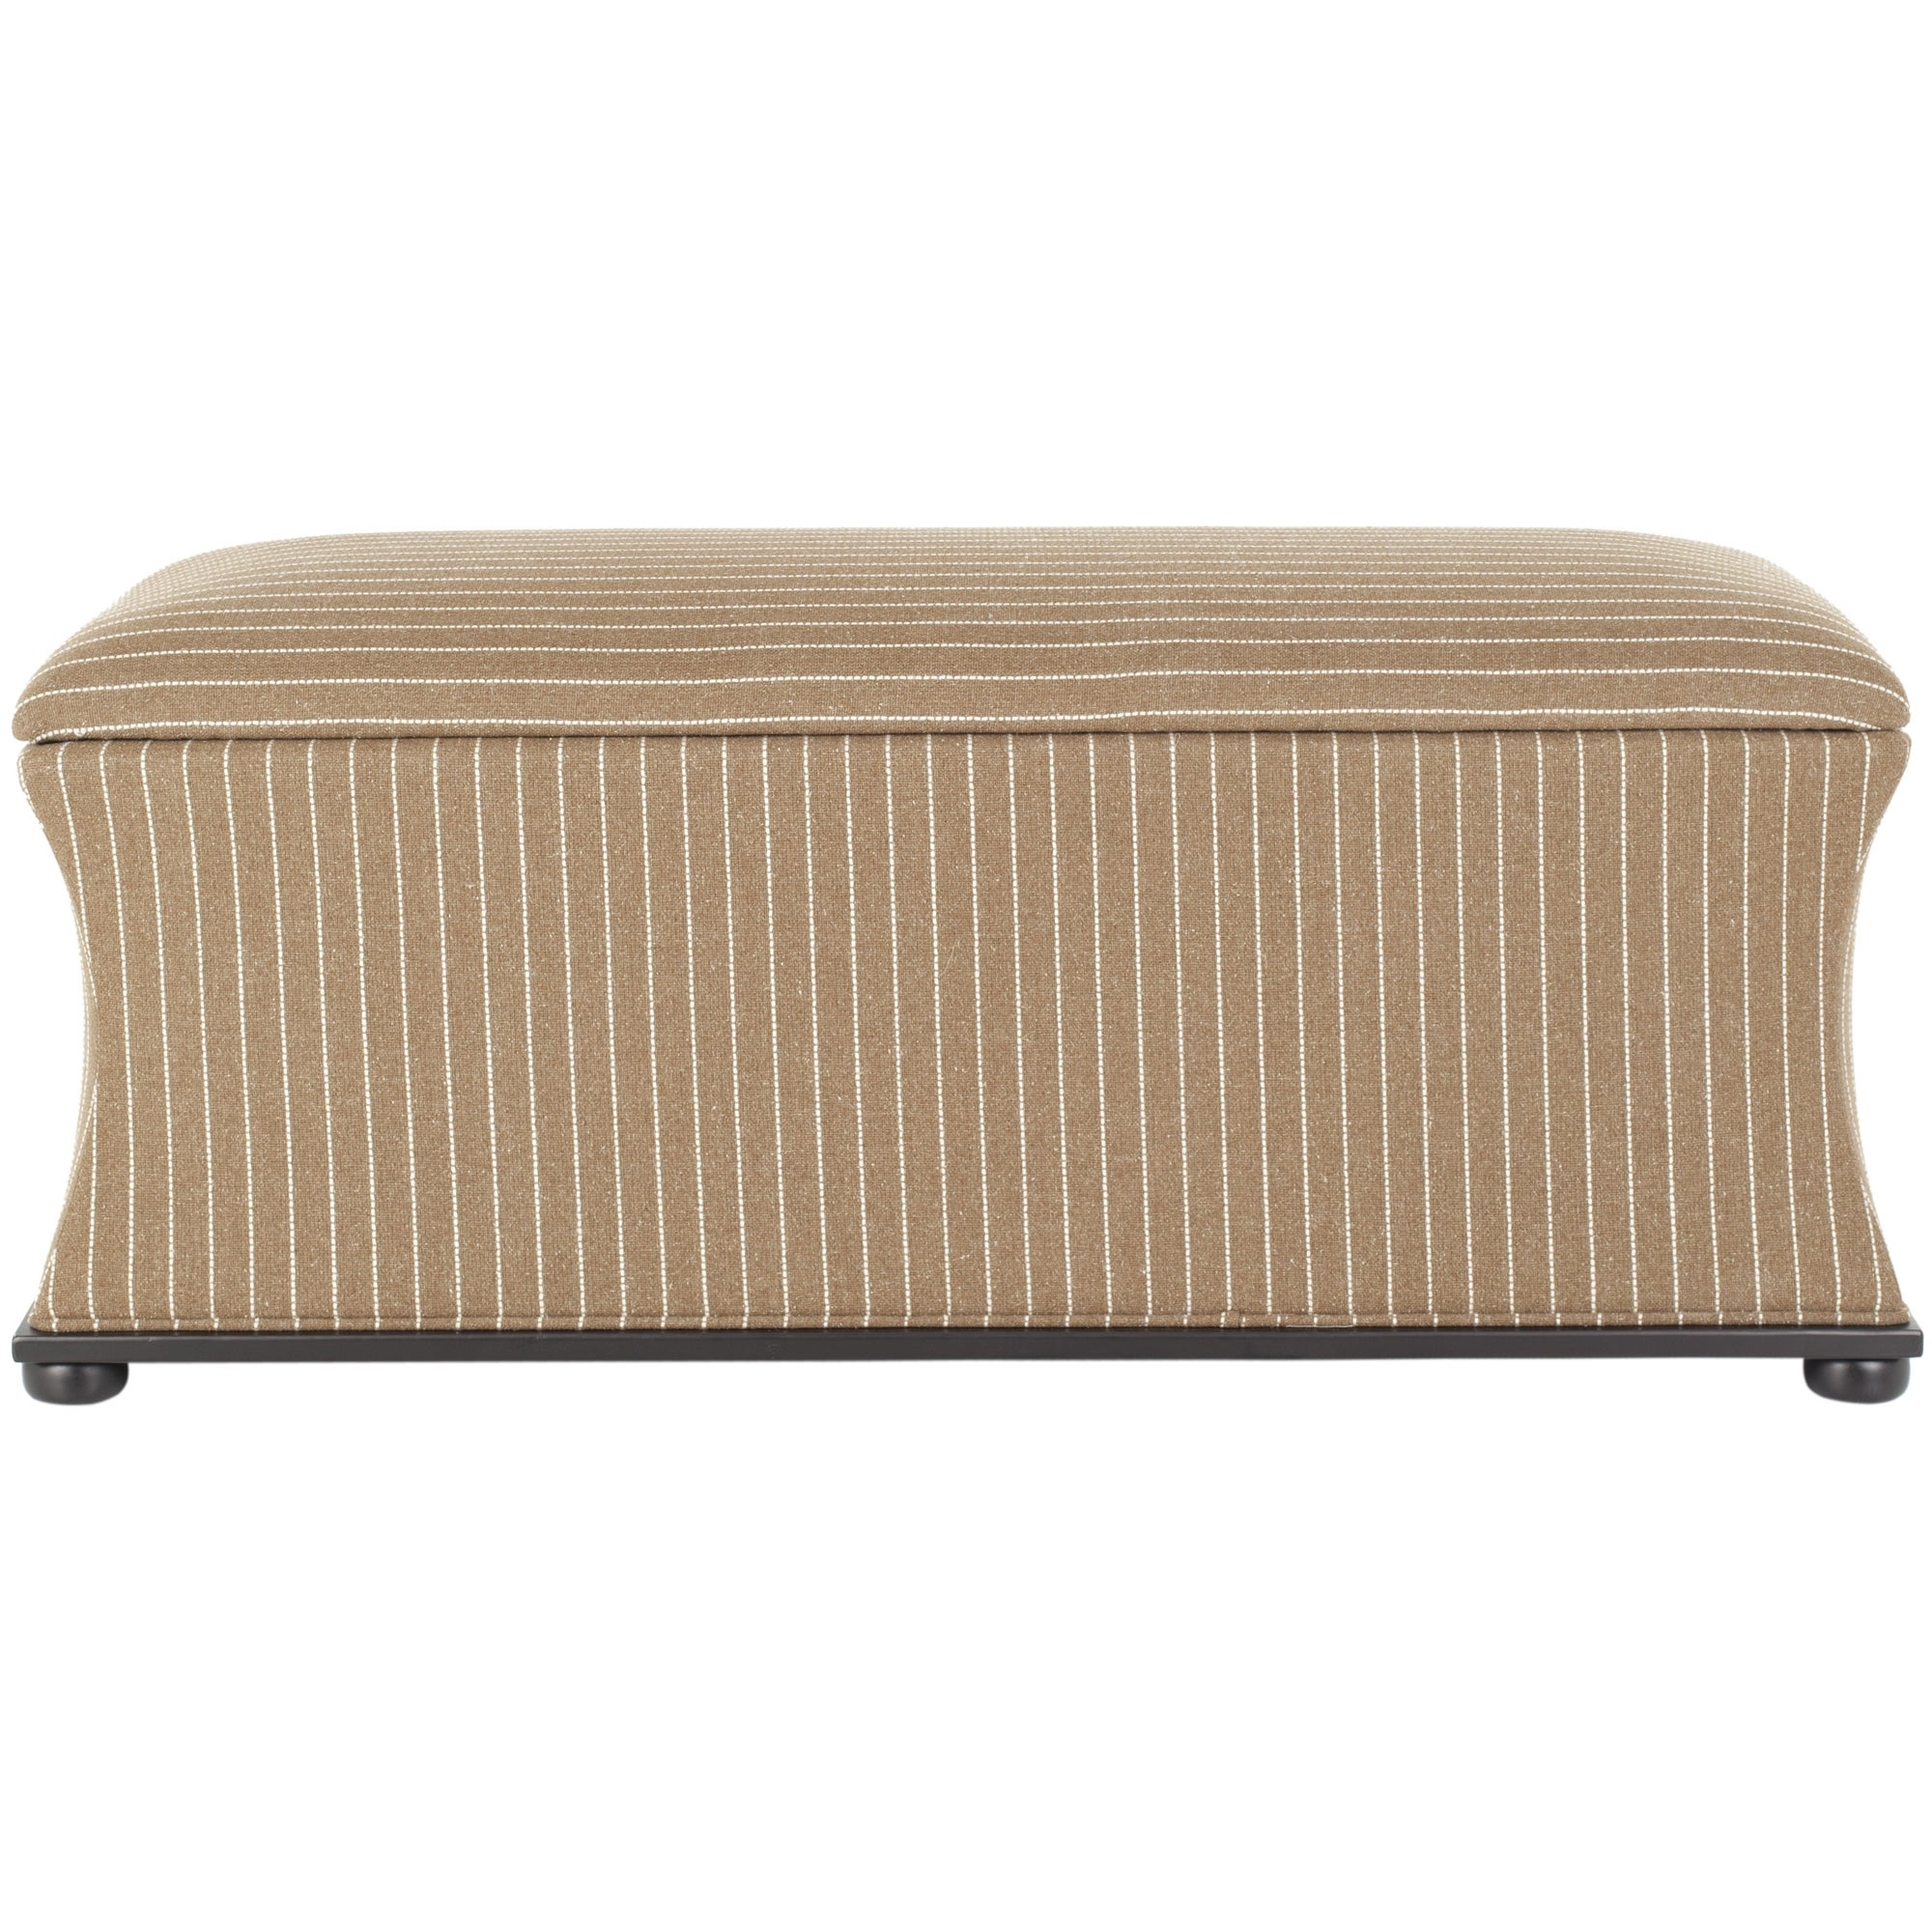 Stupendous Safavieh Aroura Brown Storage Bench 36 2 X 18 5 X 20 5 Caraccident5 Cool Chair Designs And Ideas Caraccident5Info